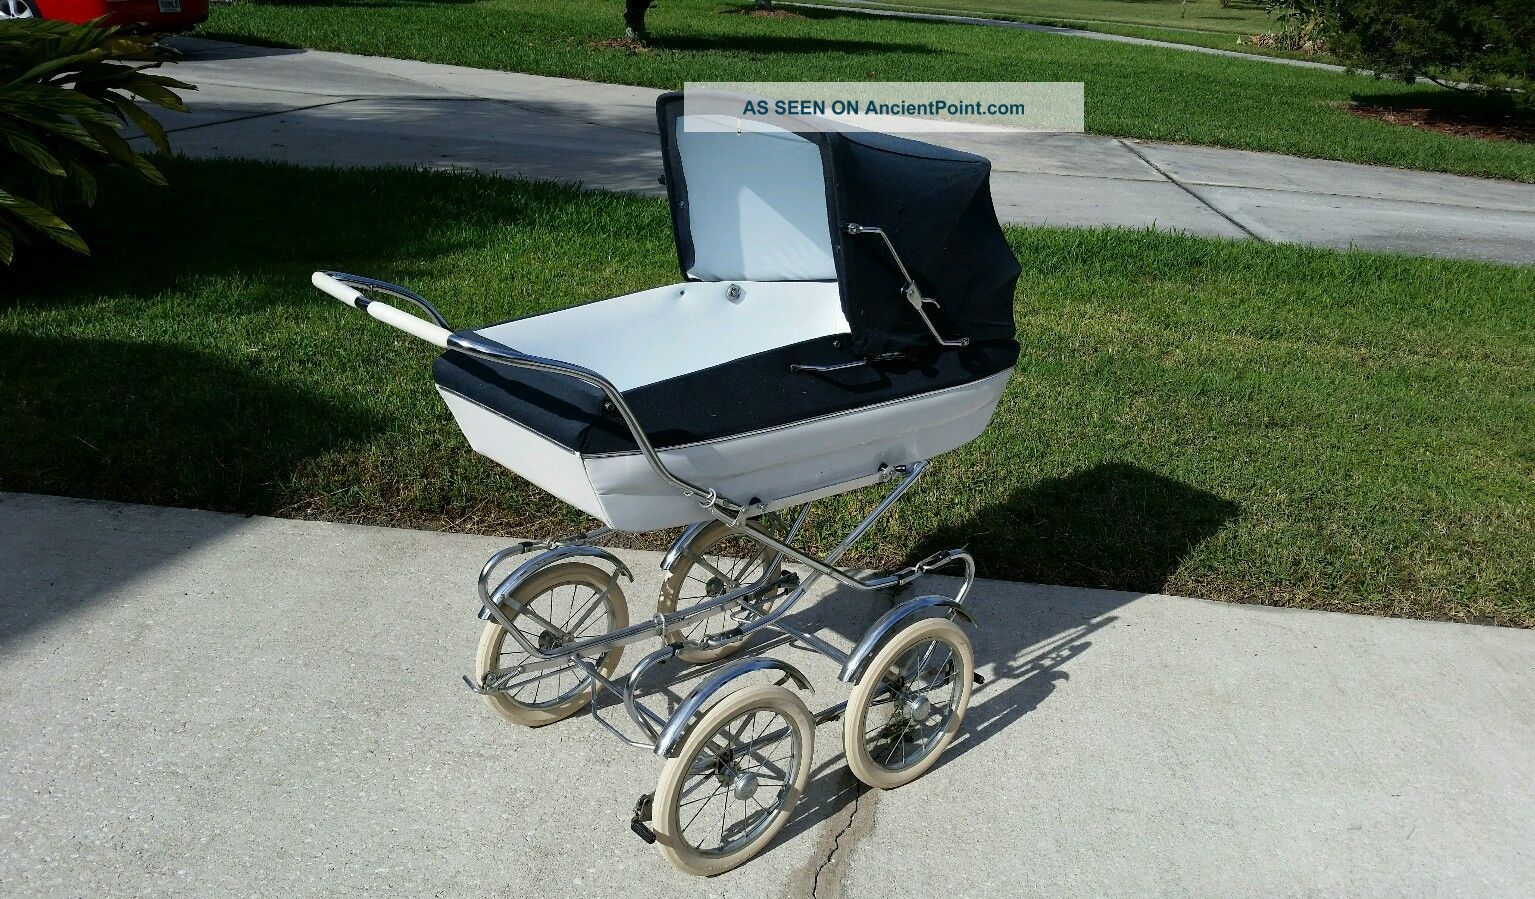 Vintage Peg Perego Pram Stroller Carriage Baby Buggy - Condit.  Antique Baby Carriages & Buggies photo